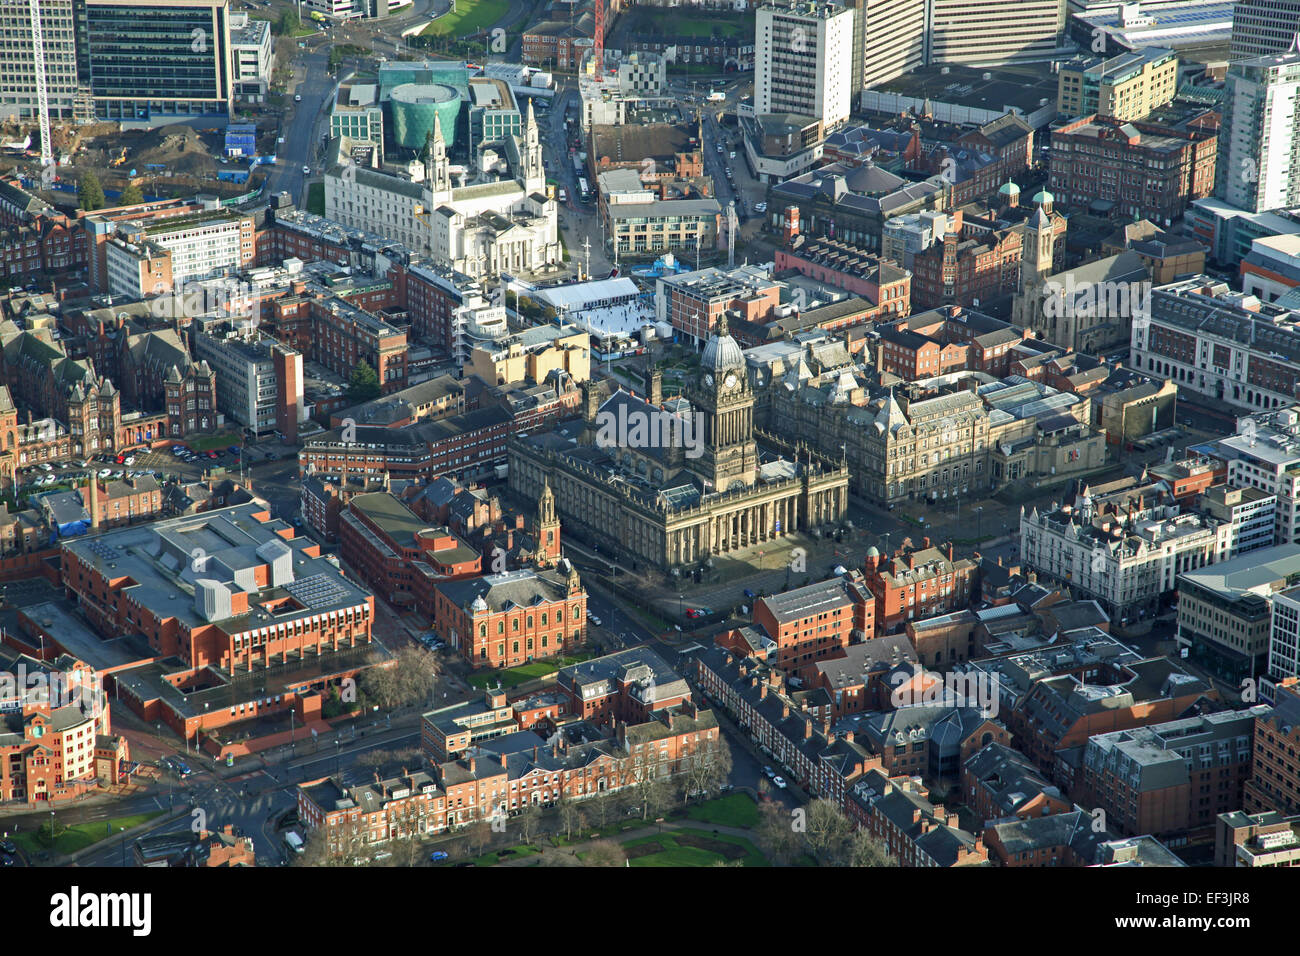 a wintery view of Leeds city centre with the Town Hall and Civic Hall prominent Stock Photo